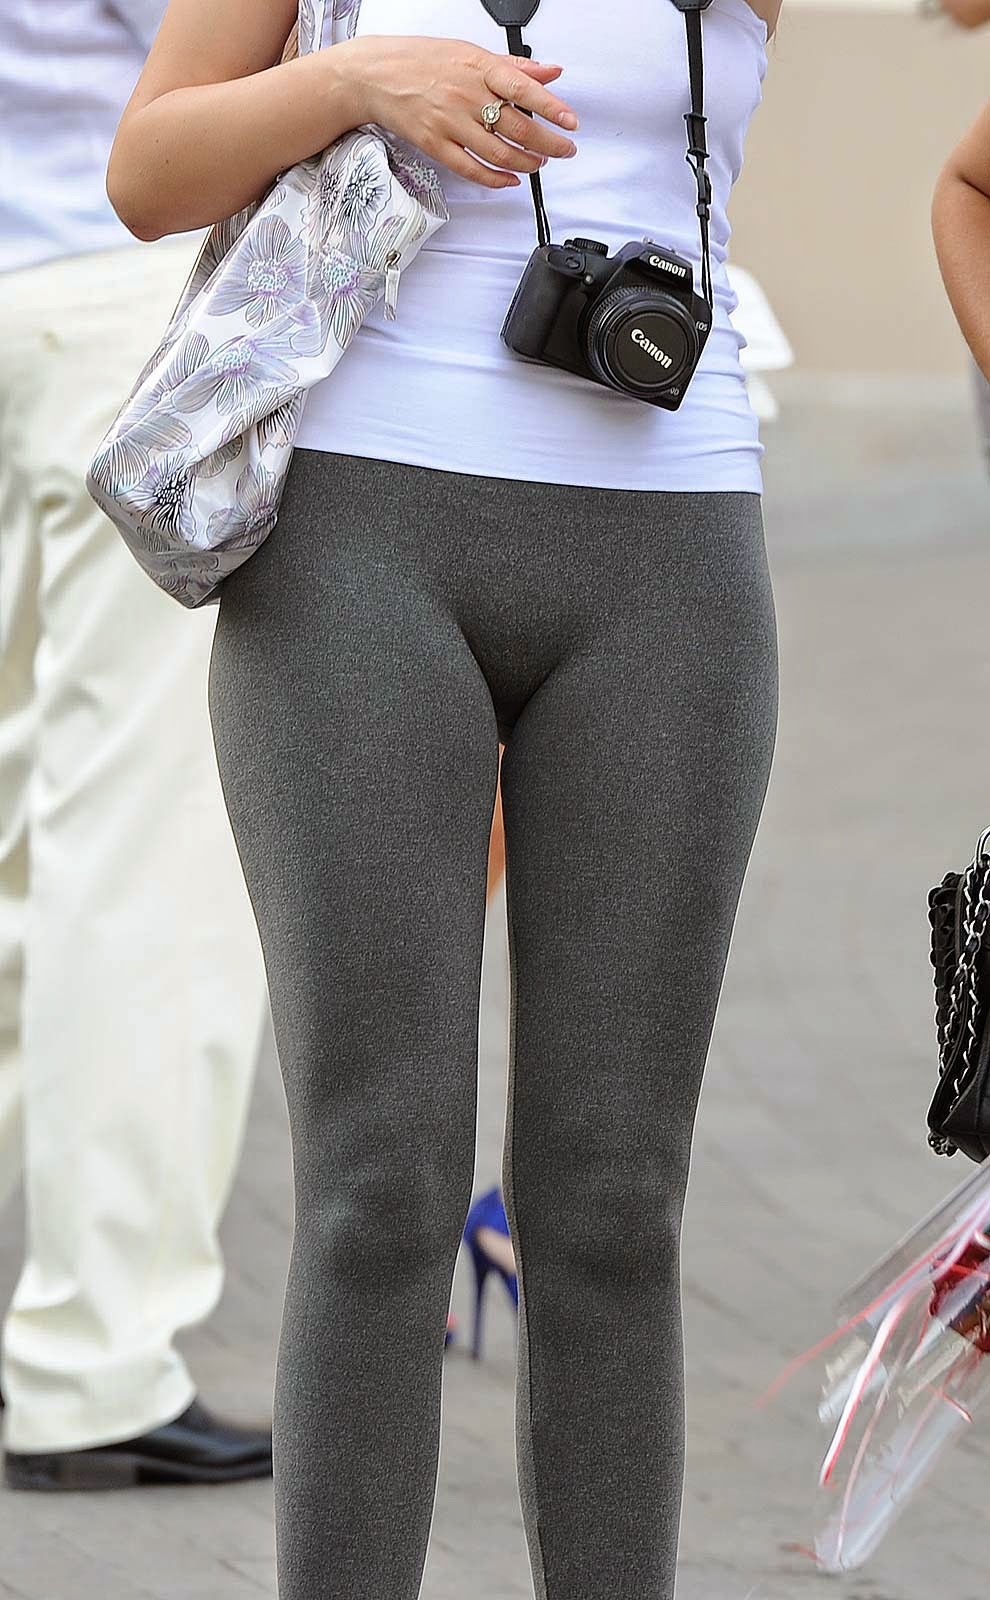 Confirm. Sexy daughter in leggings for